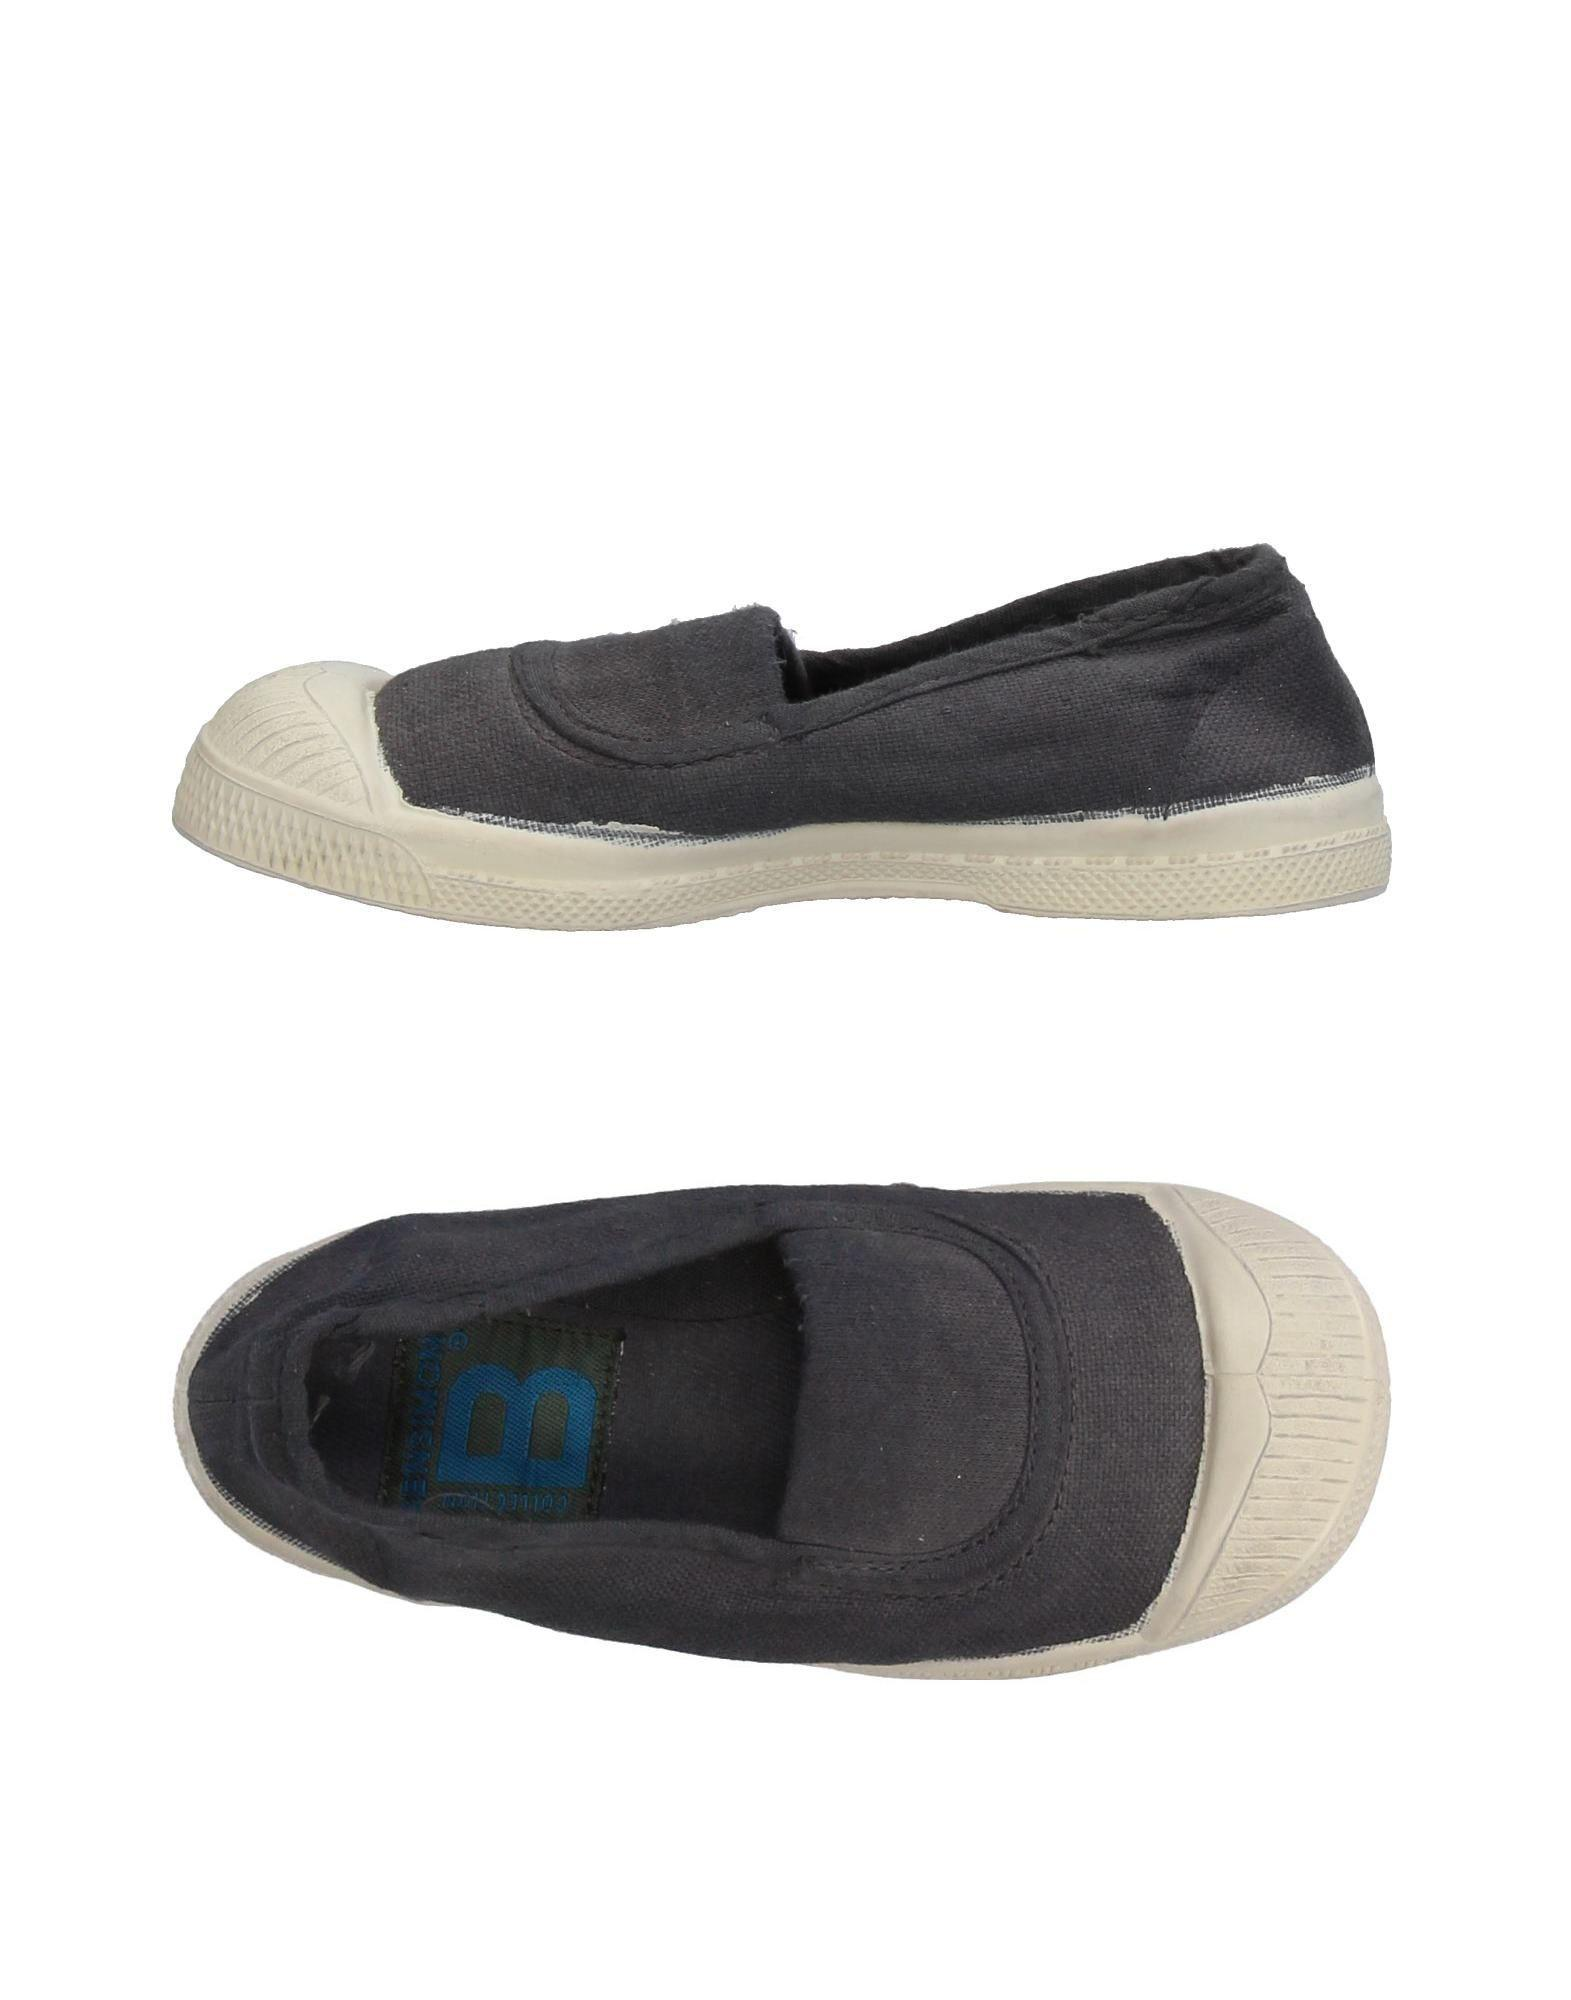 Shop For Cheap Online Huge Surprise Online FOOTWEAR - Low-tops & sneakers Bensimon Outlet Clearance Store Hdzi6y